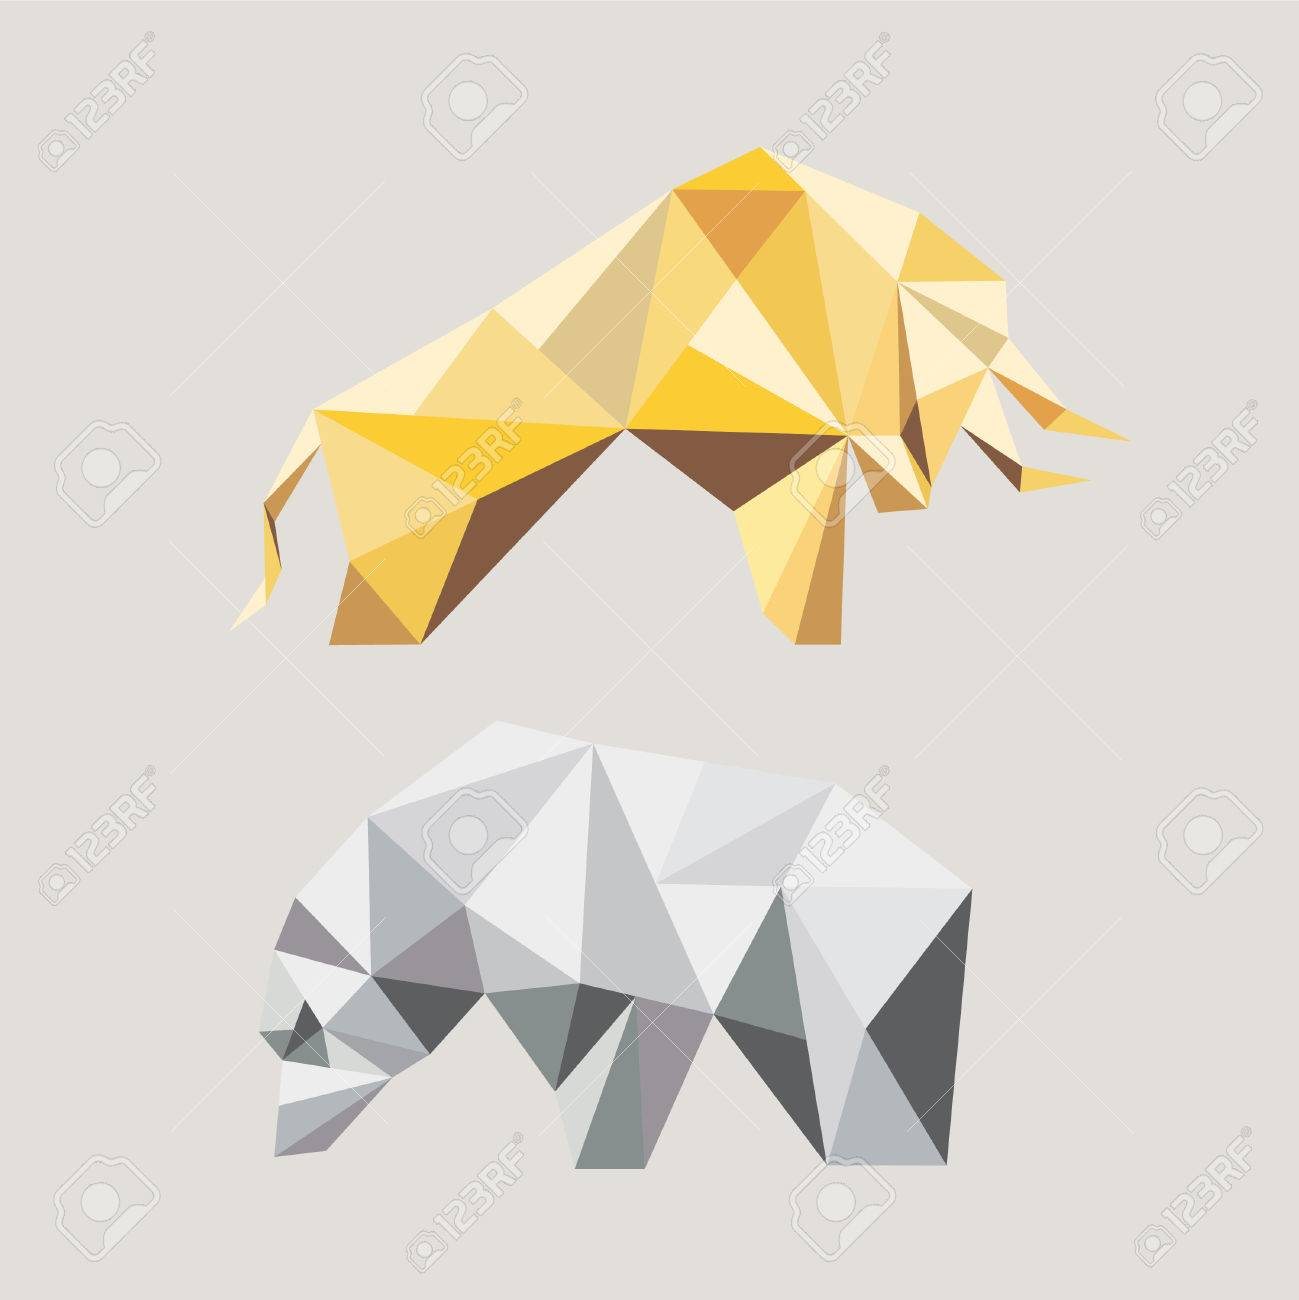 Bull And Bear In The Geometric Style Symbols Of Stock Market